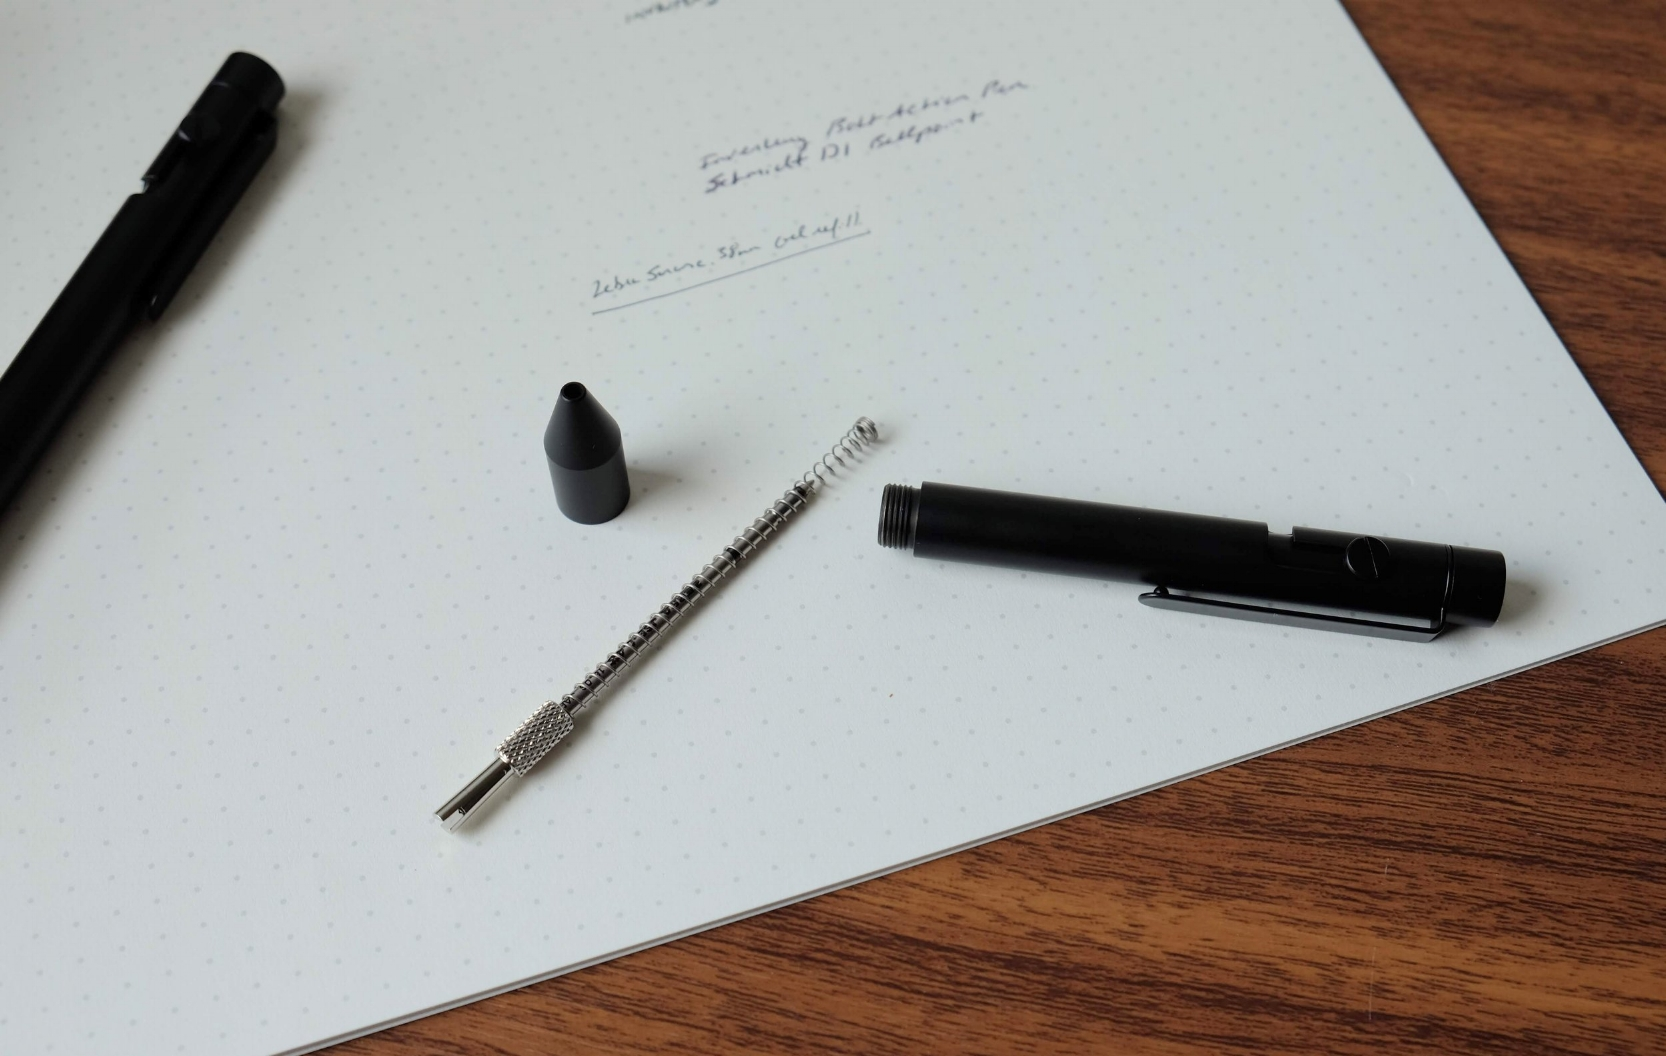 The small pen comes fitted with a D1 adapter that allows you to use any D1 refill.